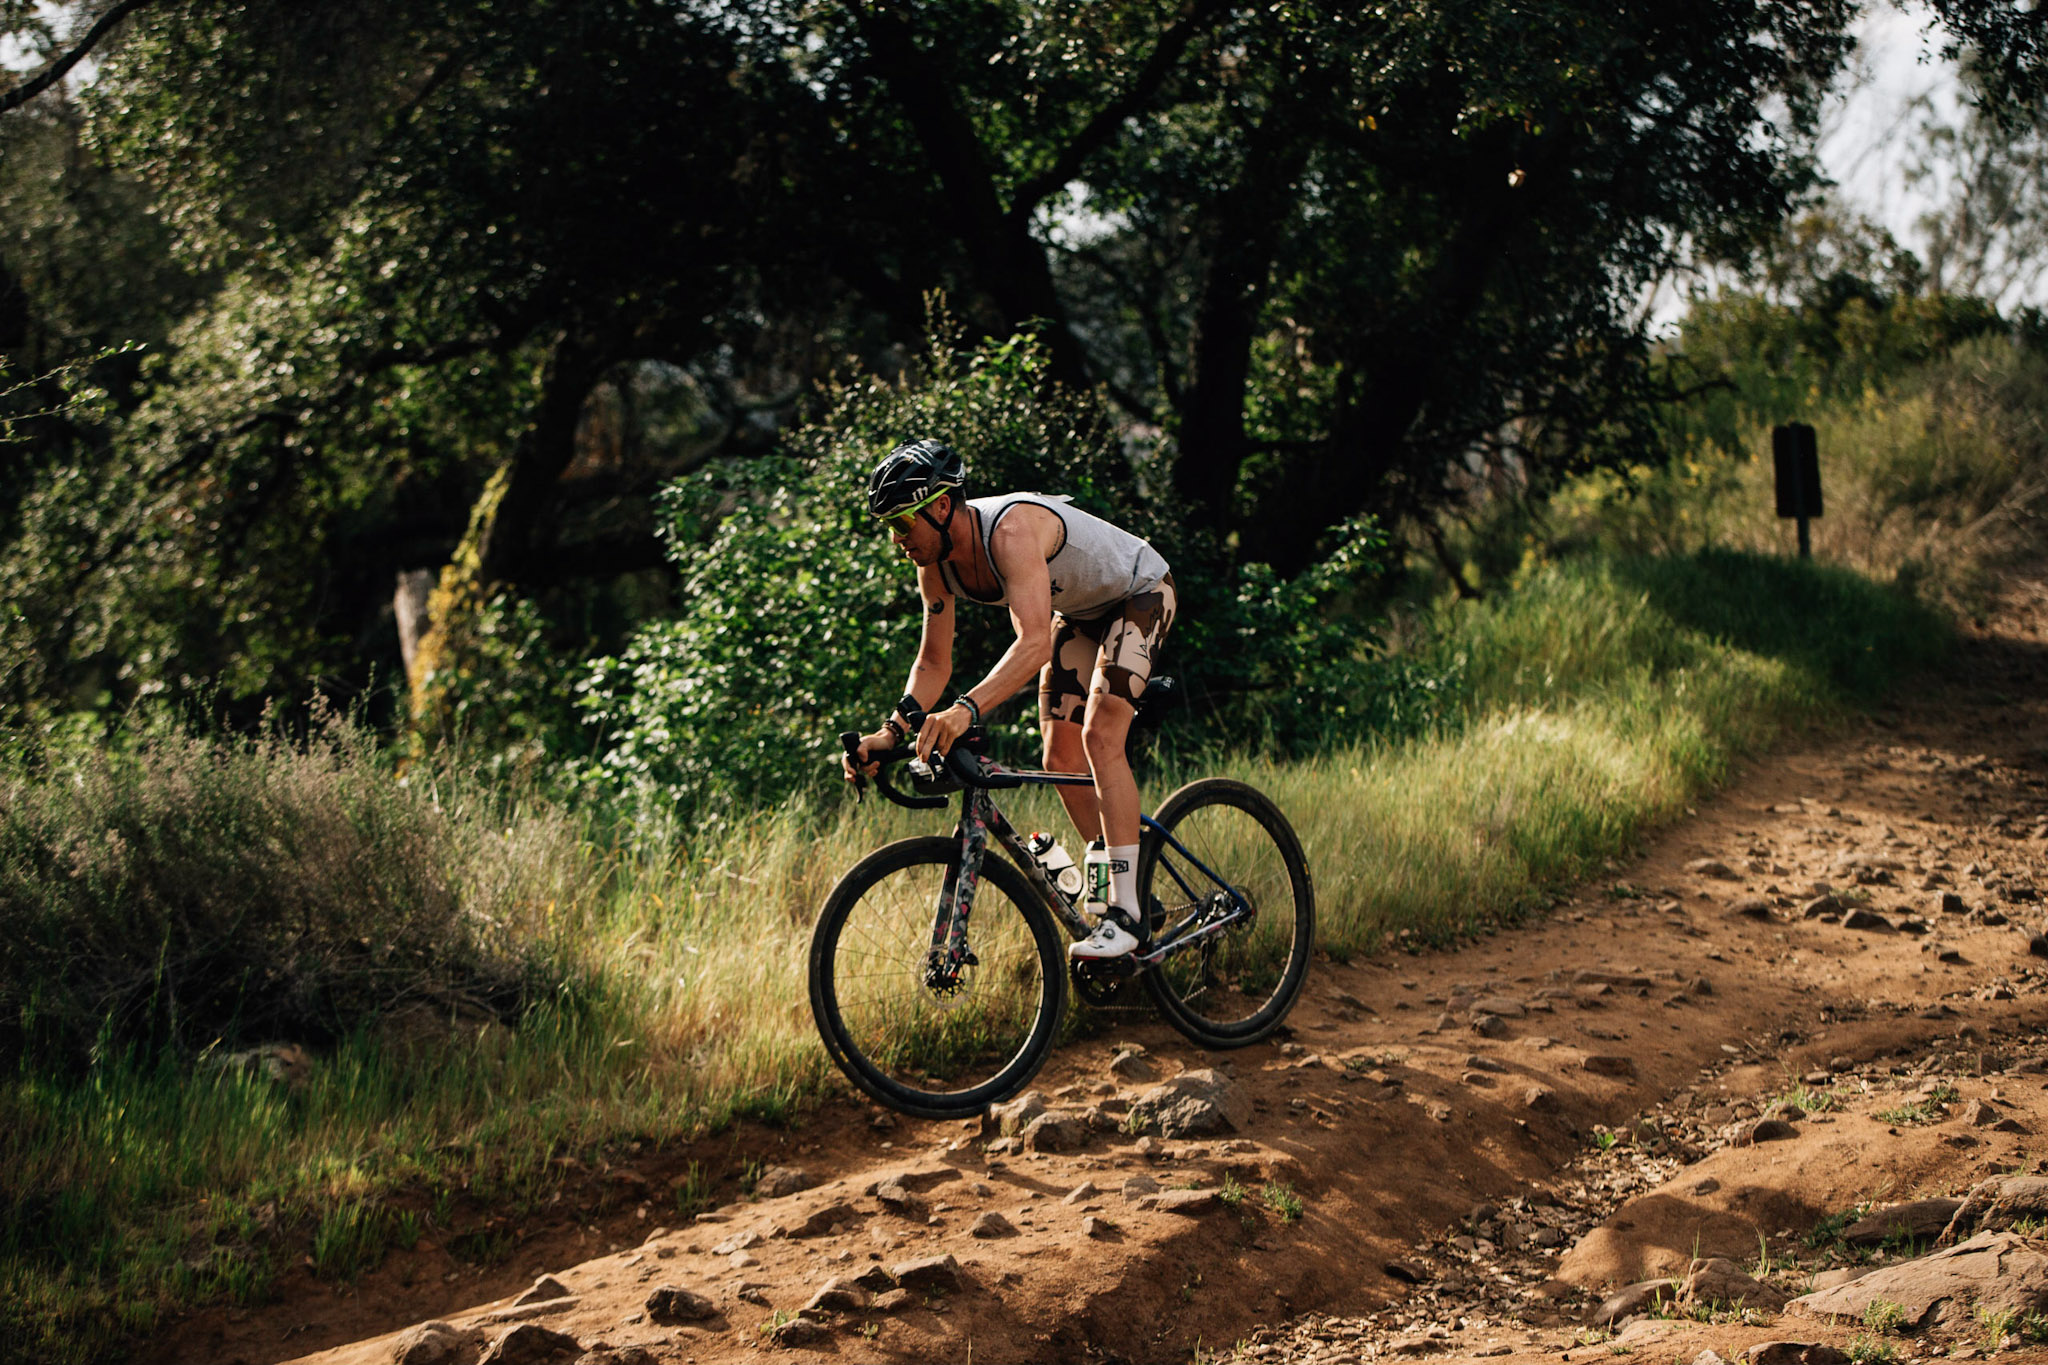 Jon Hornbeck brings his own unique style to gravel, and we dig it. #spndx